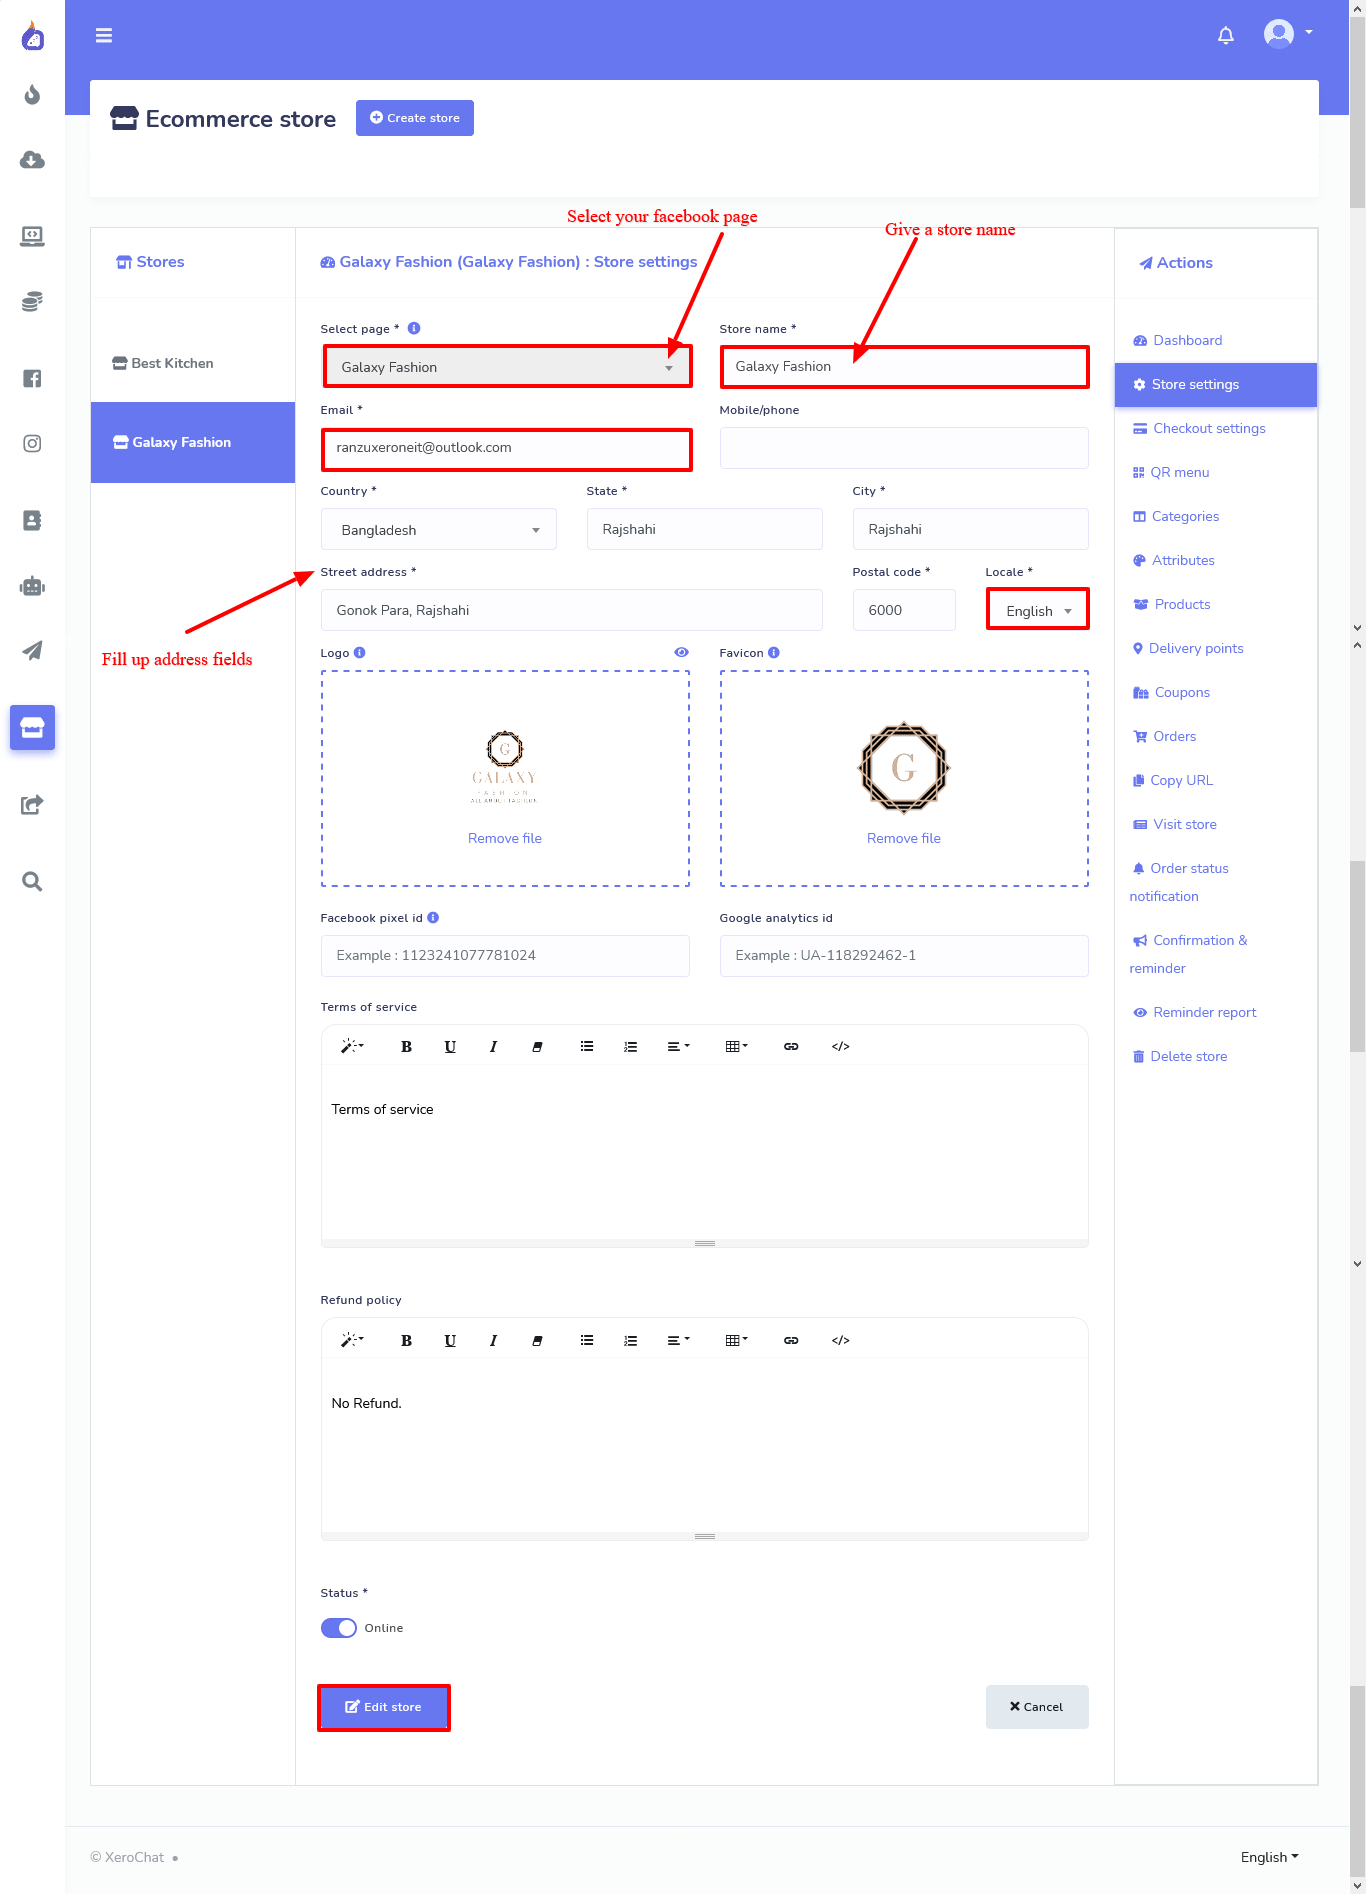 filling out a form to create a store